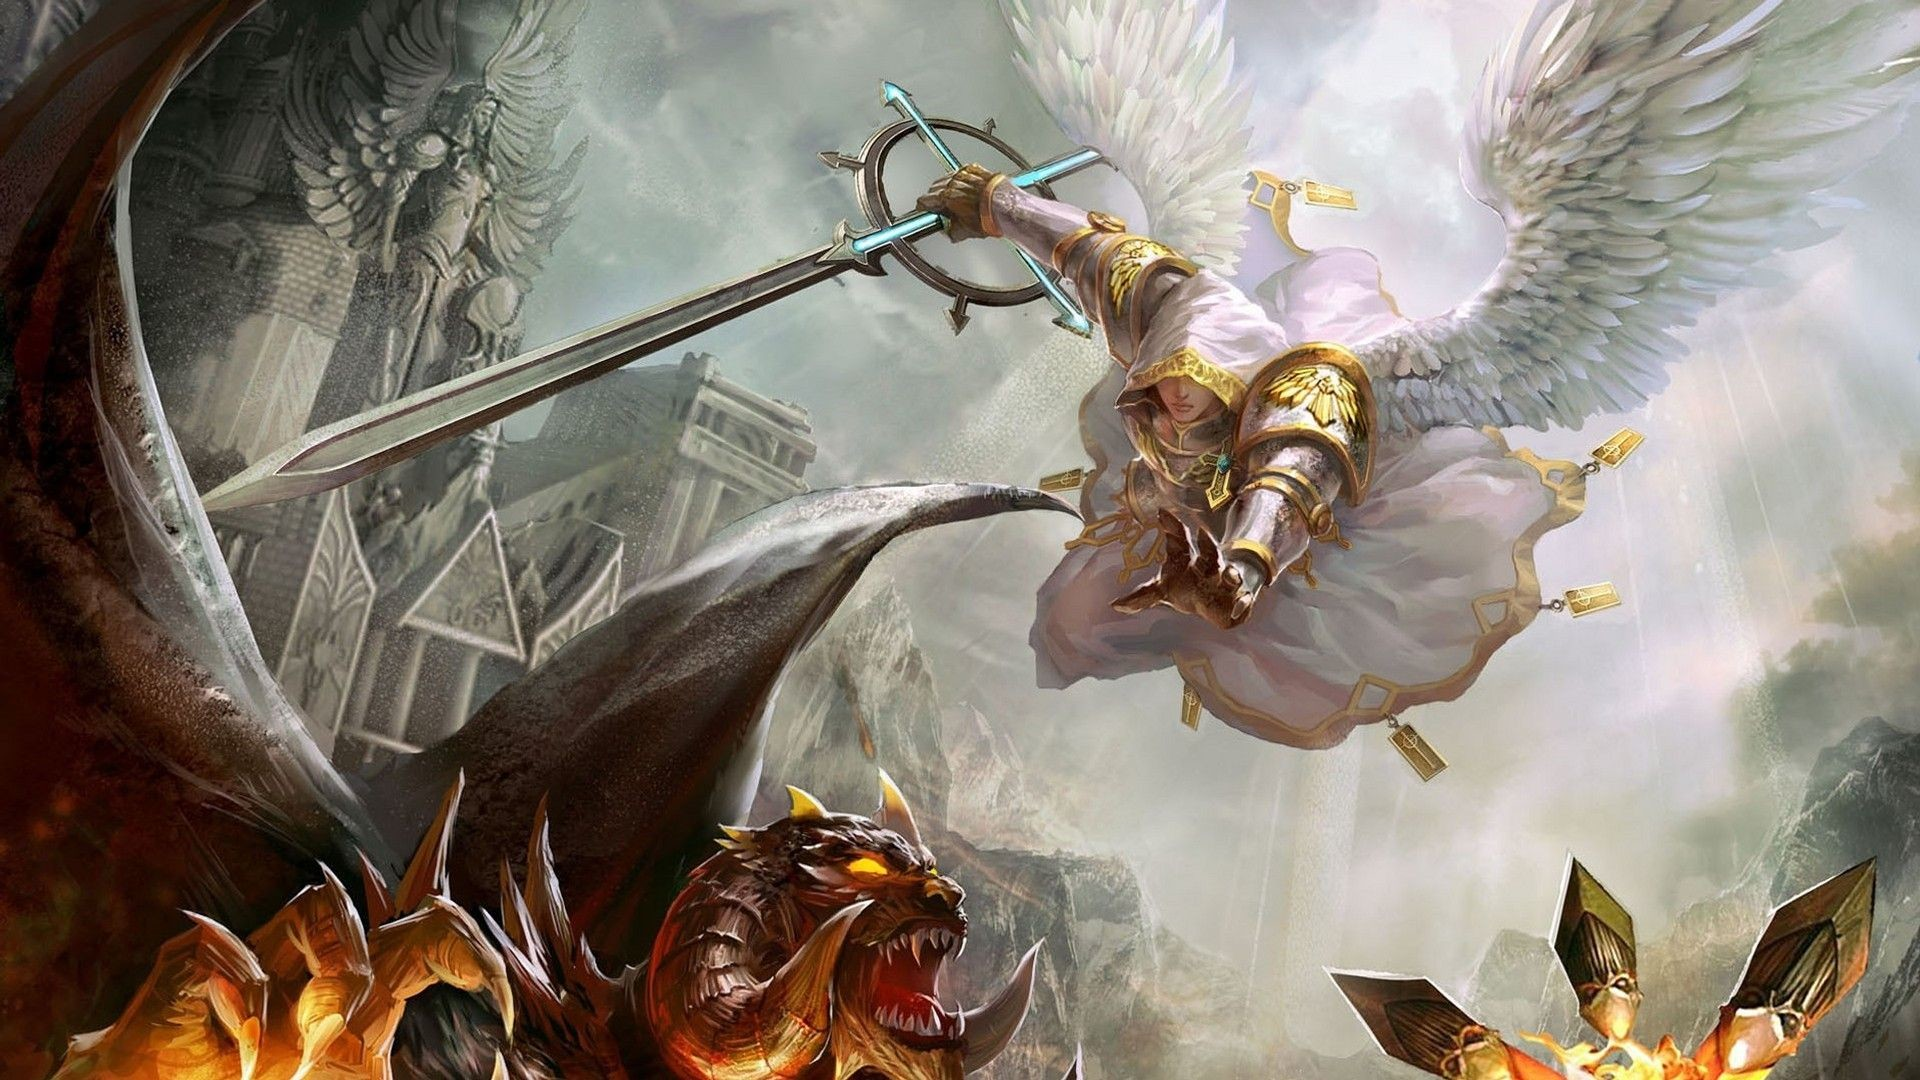 2560x1600 Magic The Gathering Images Nissa Vital Force HD Wallpaper And Background Photos